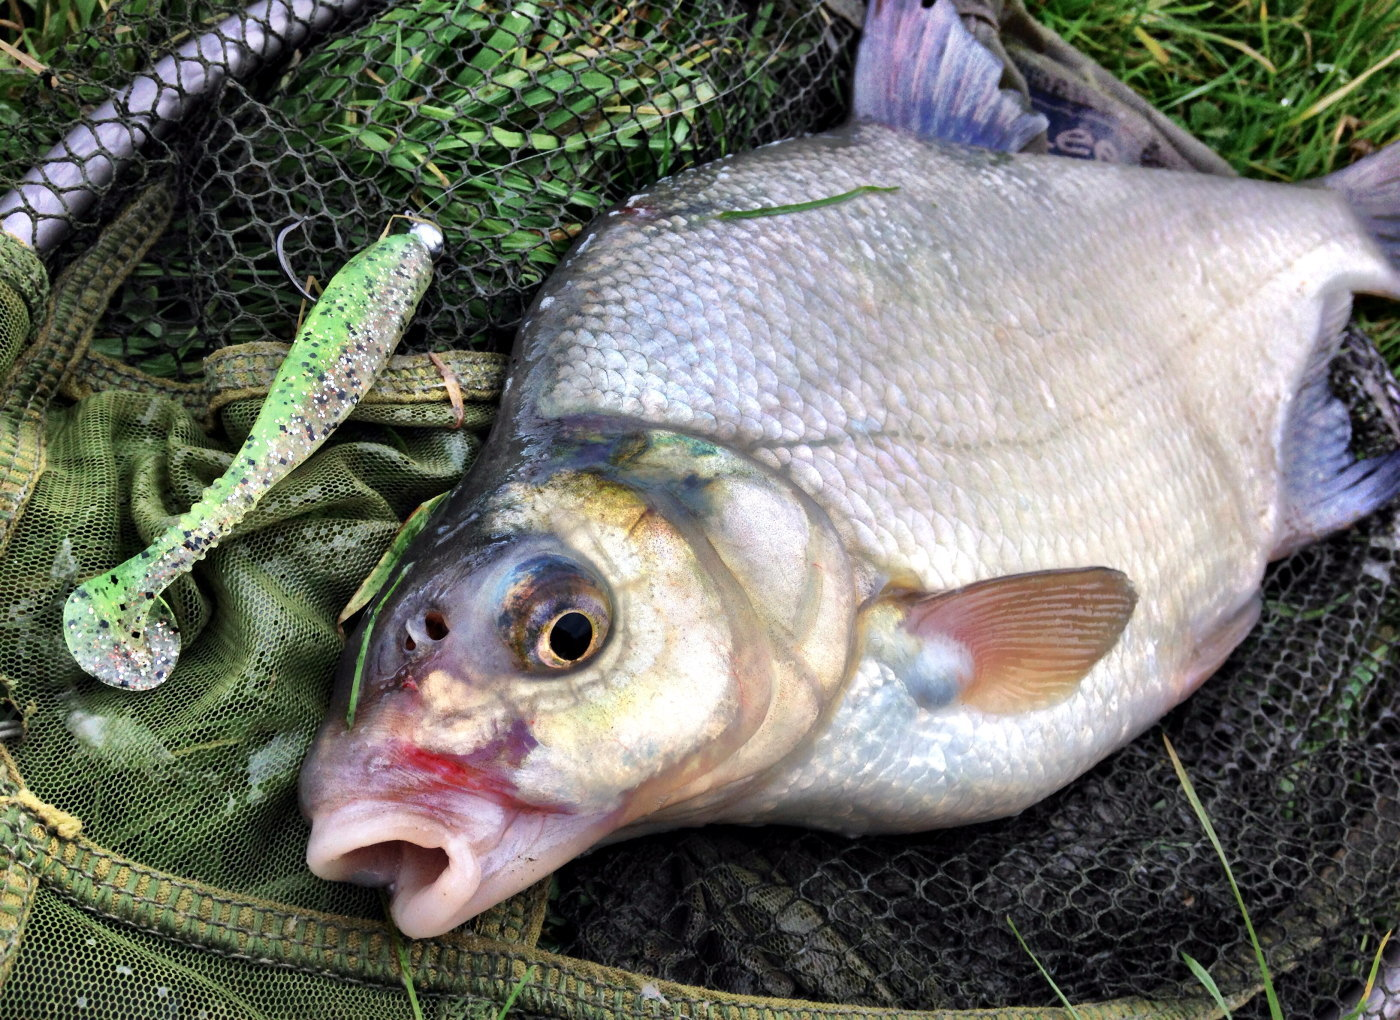 Freshwater fish bream - Still Enjoying The Freshwater Side Of Things Lrf Tackle Is Bang On For Targeting Perch With Plenty Of Small Fish And The Chance Of A Lunker Up To 4lb